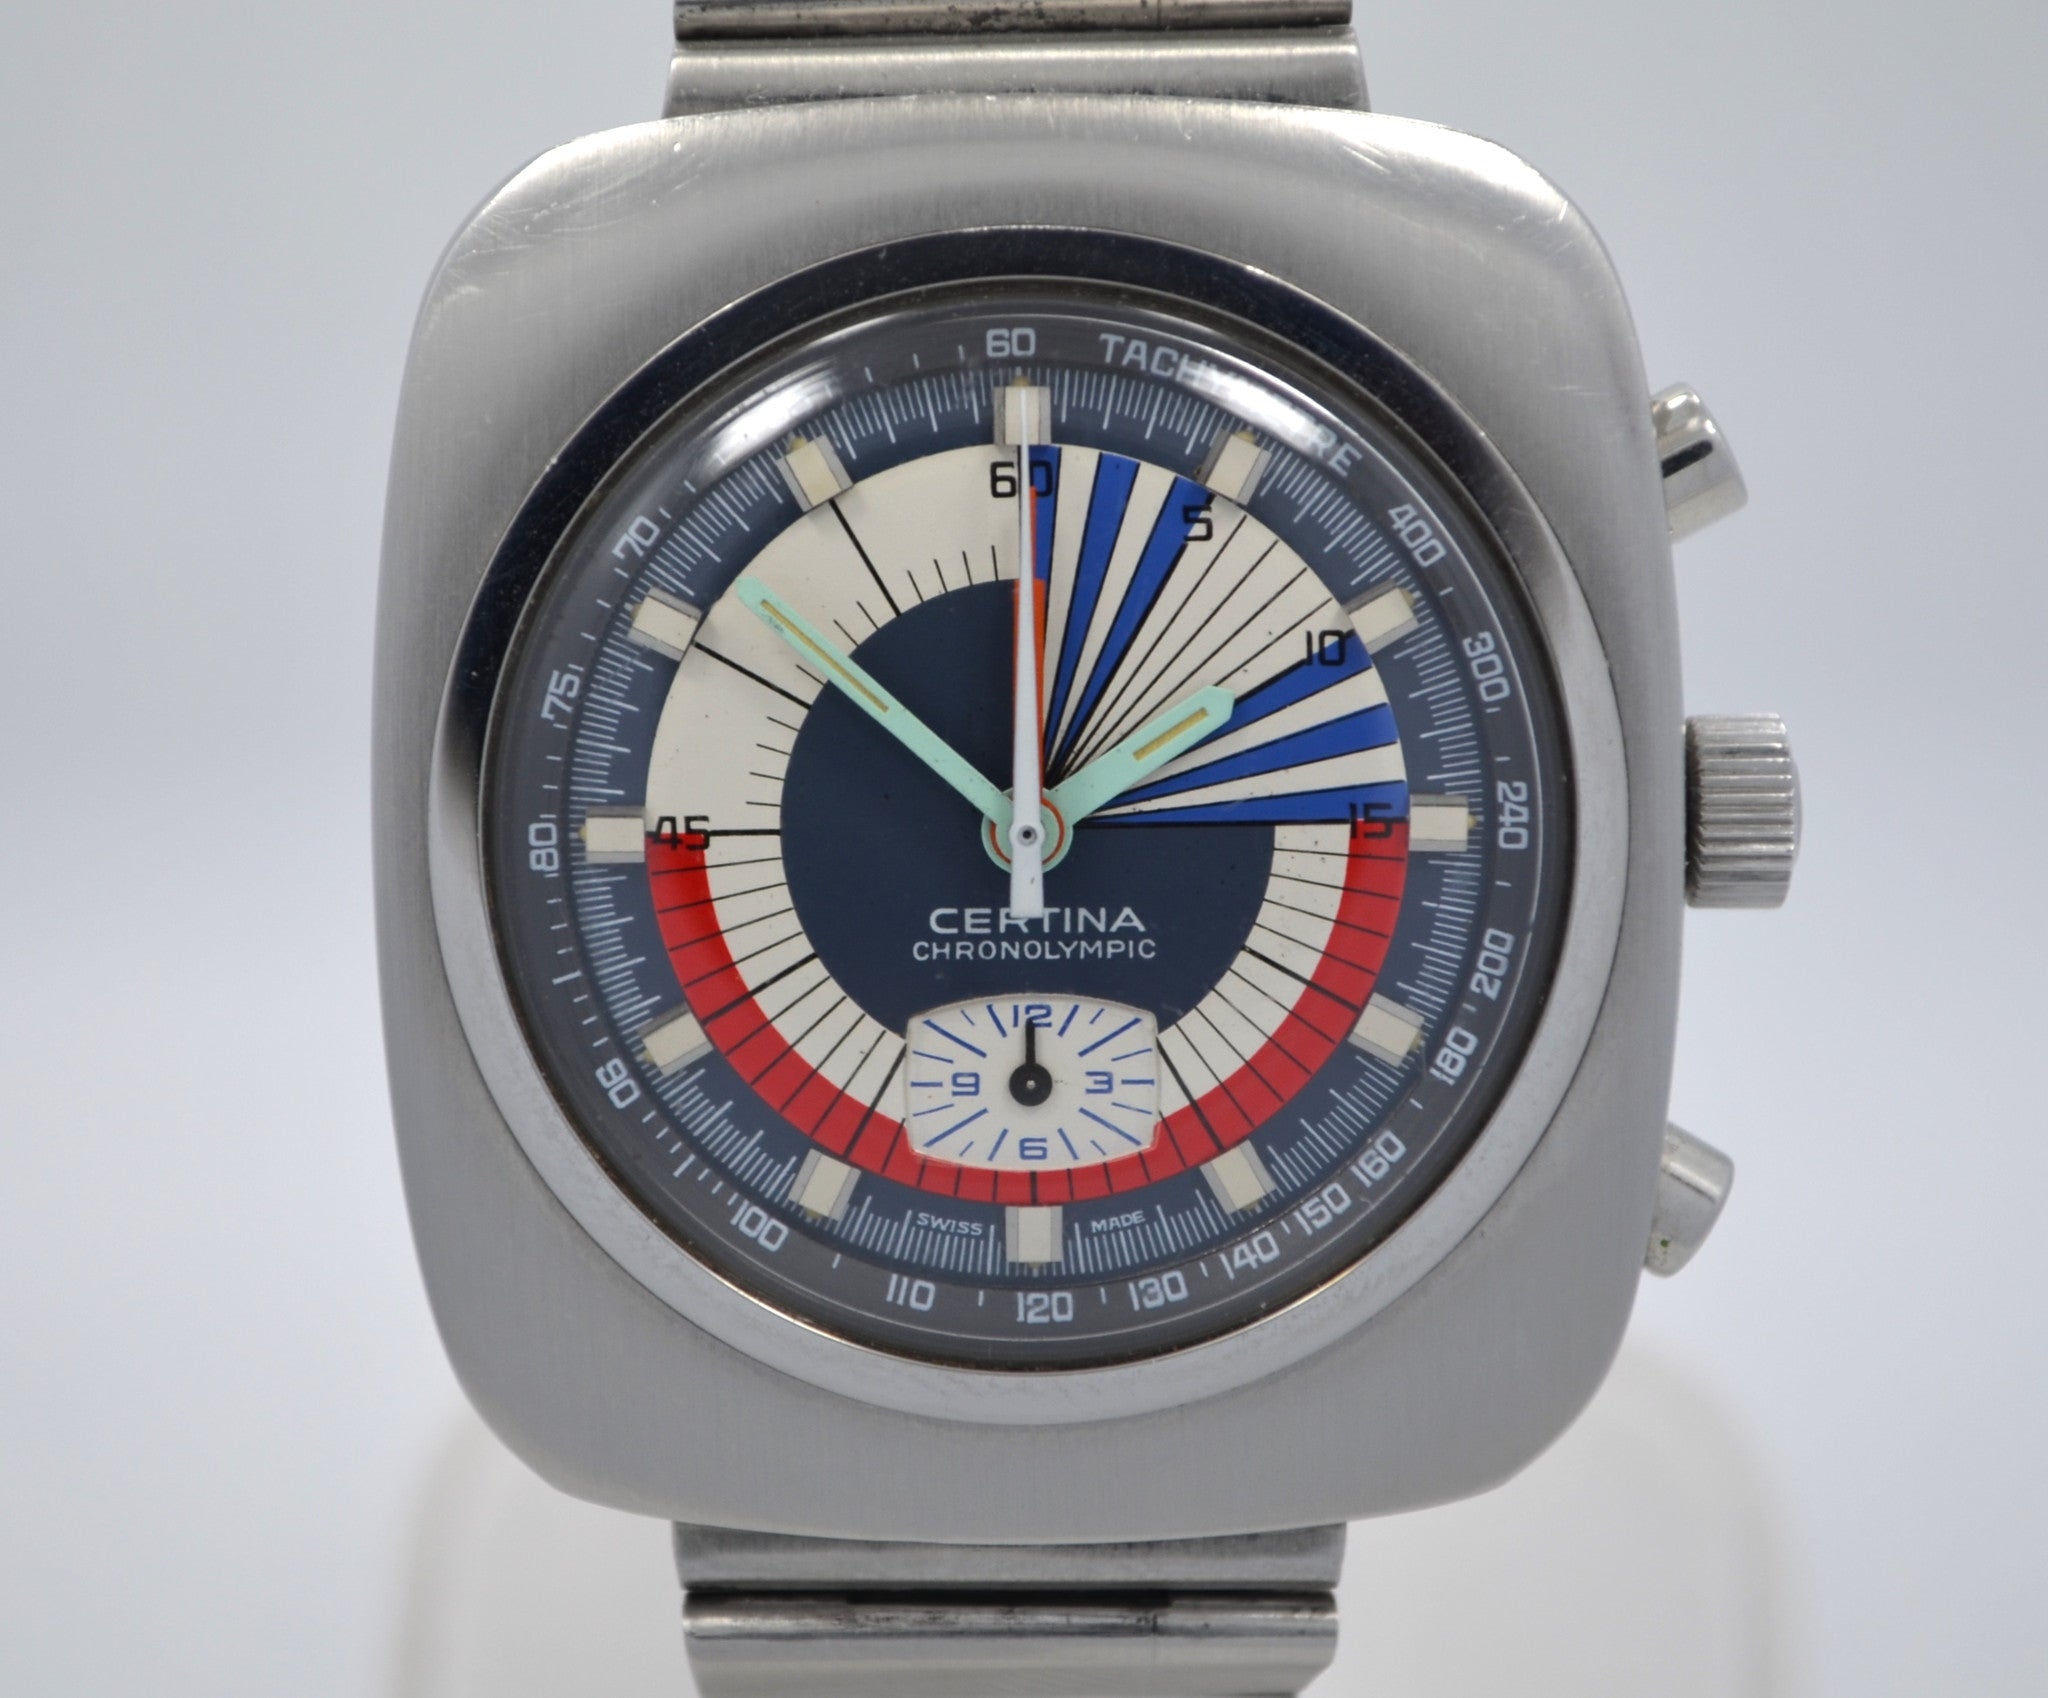 Vintage Certina Chronolympic Regatta Valjoux 728 Chronograph Steel Wristwatch - Hashtag Watch Company